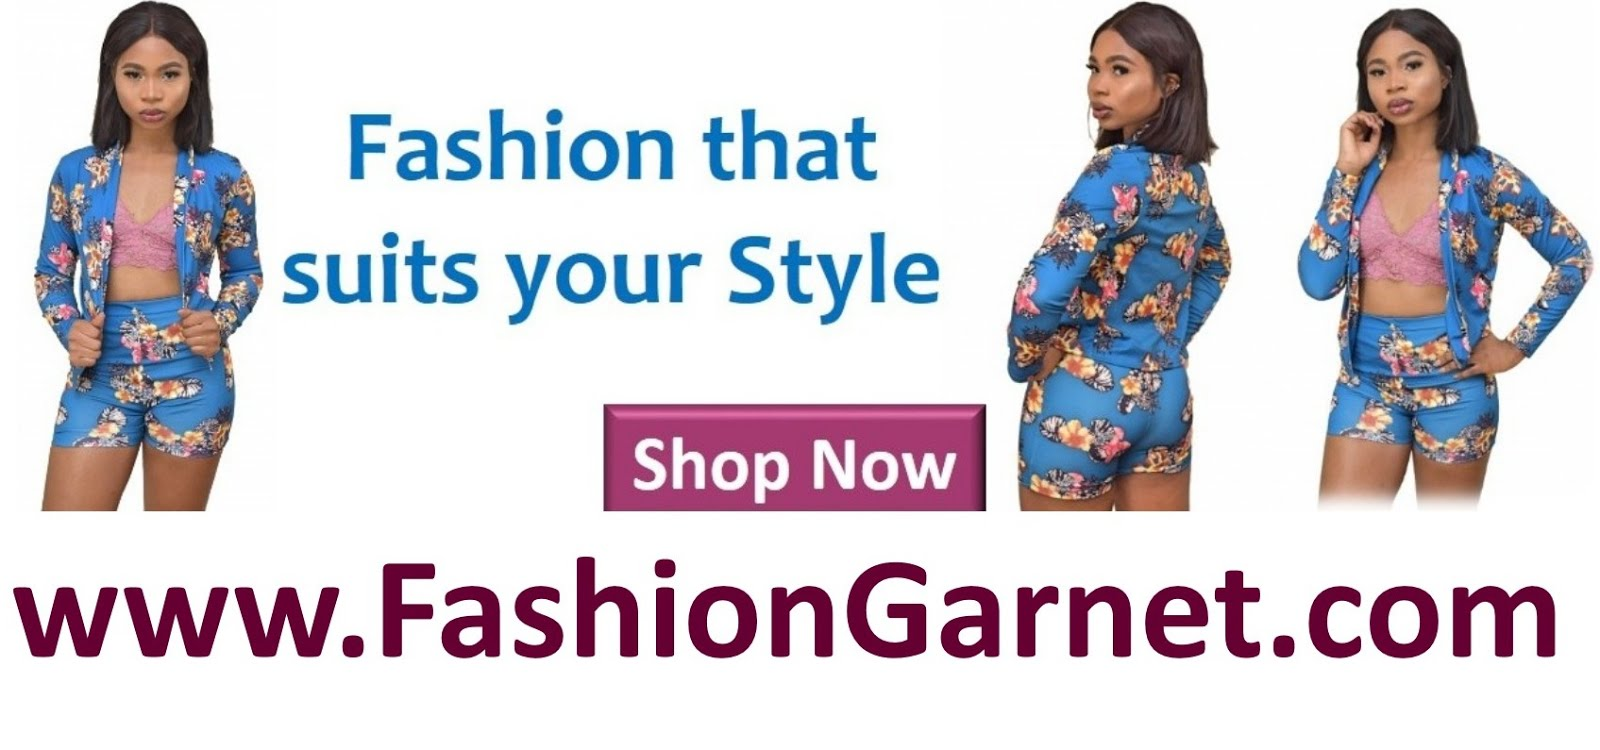 SPONSORED: Shop Now At Fashion Garnet